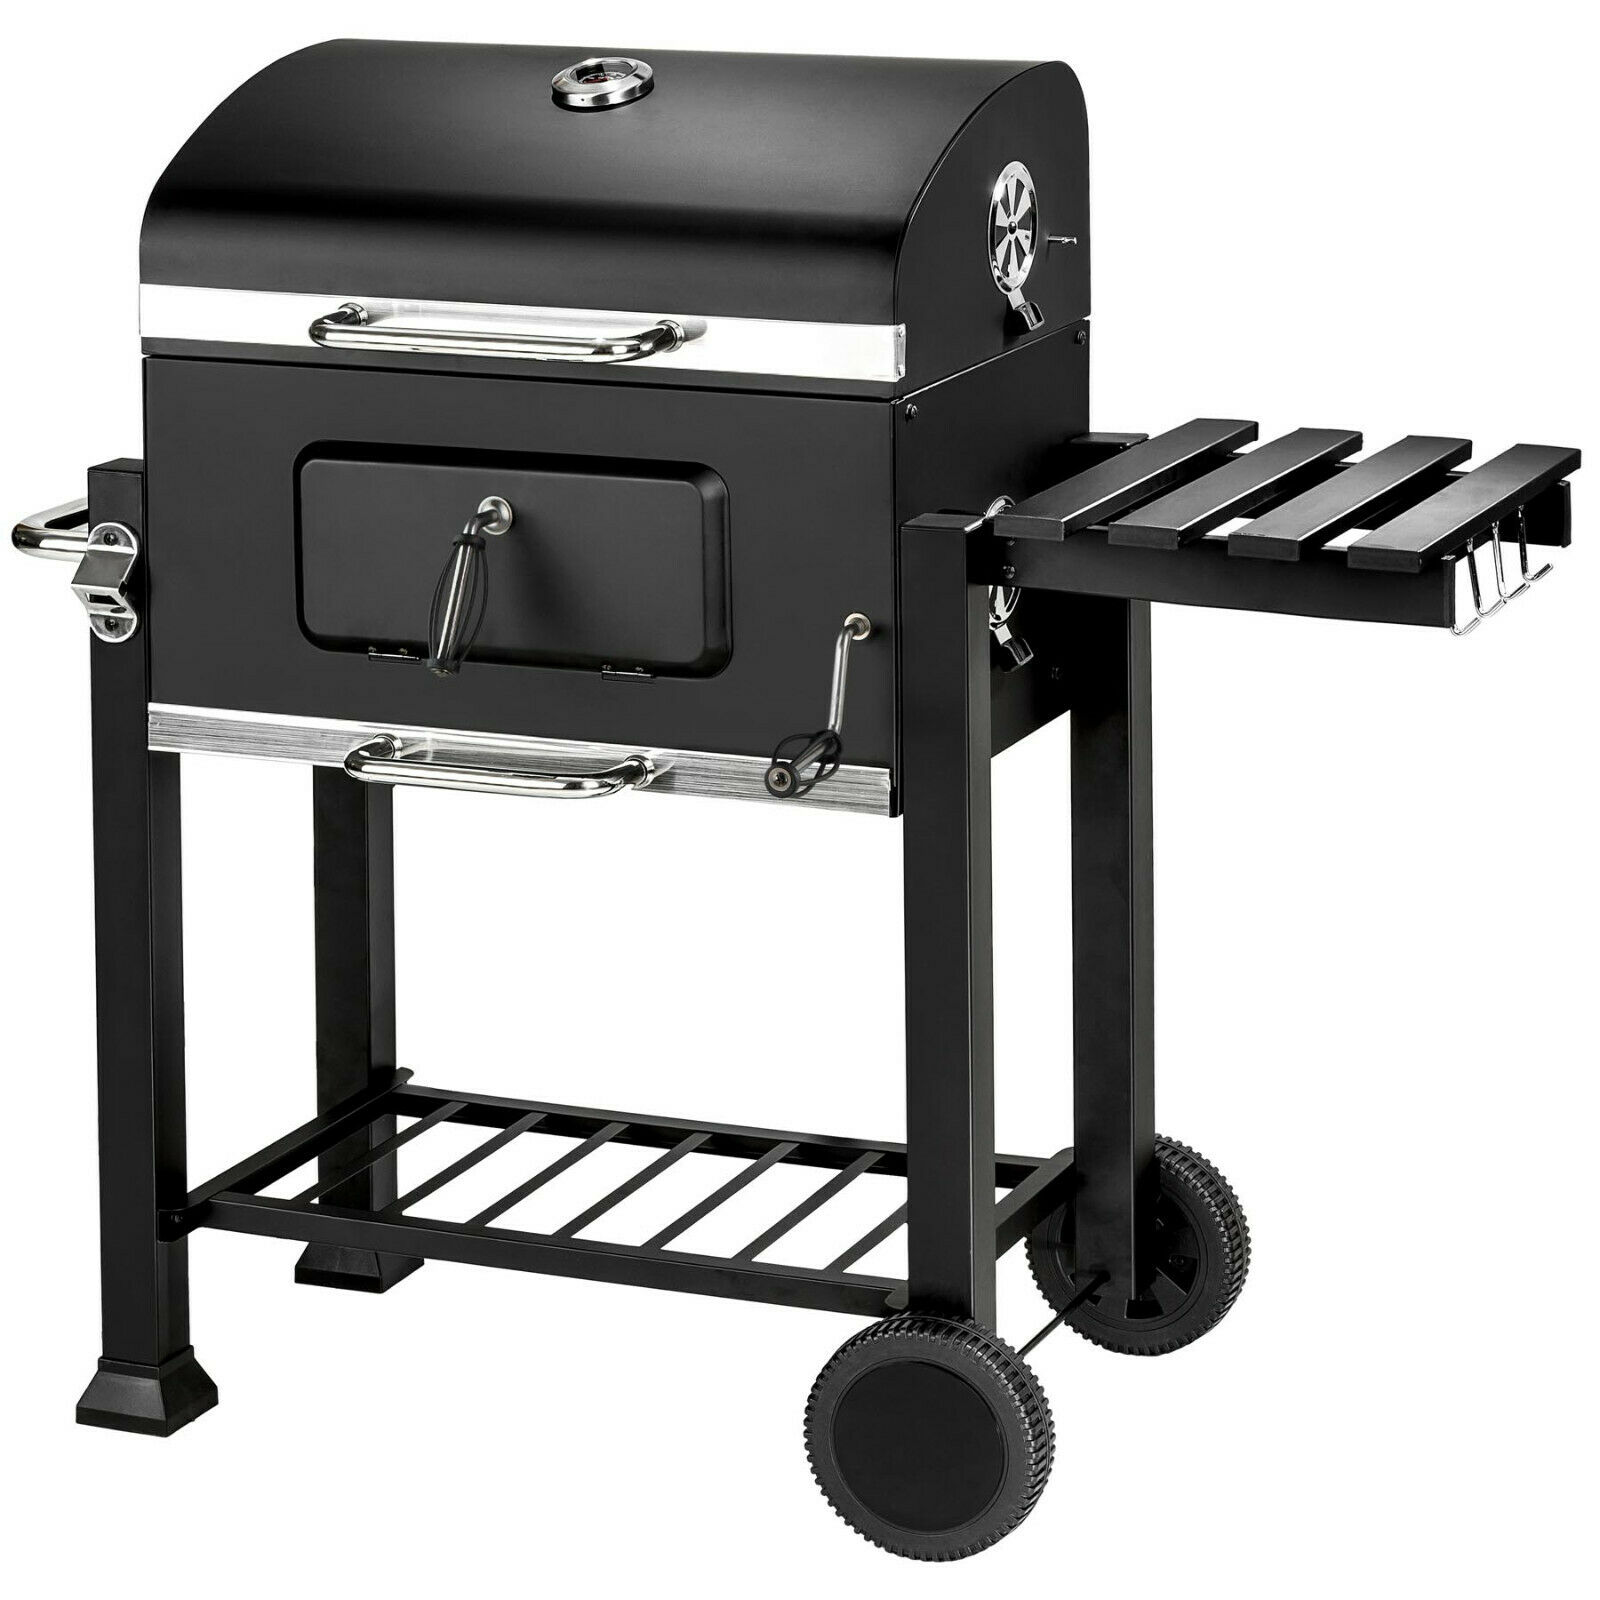 Holzkohlegrill bbq holzkohle barbecue smoker grill for Grill holzkohle